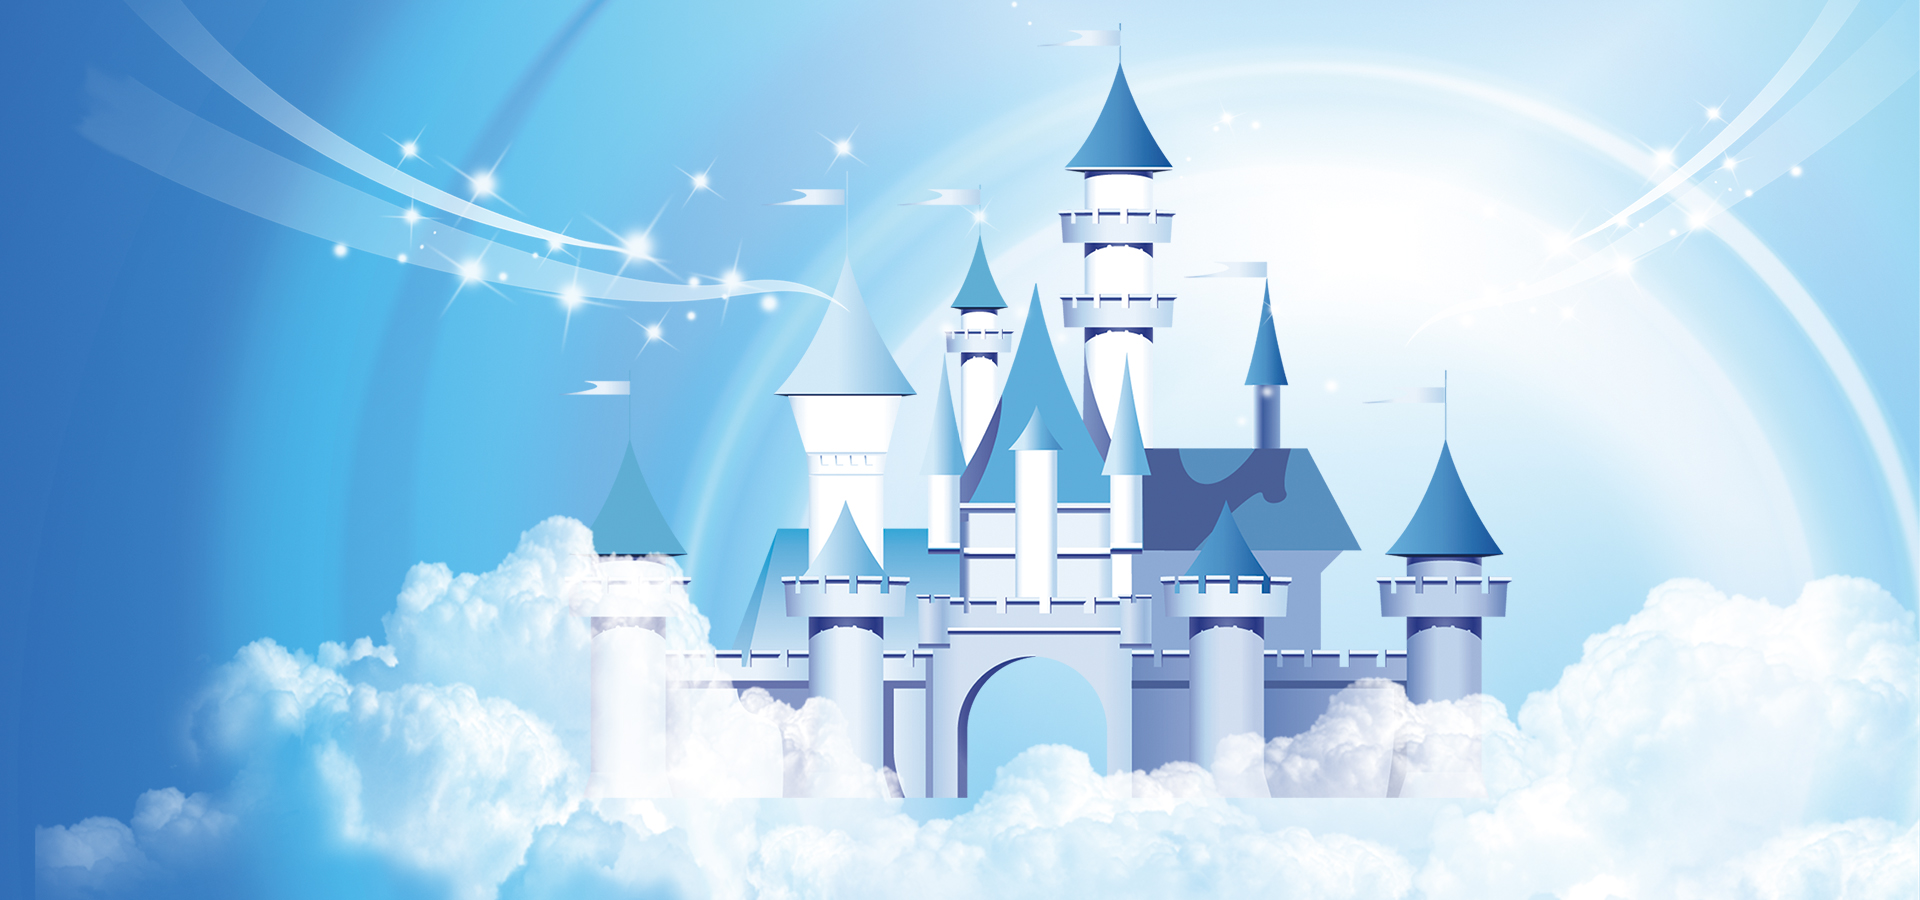 disney fantasy castle background  dream  disney  castle